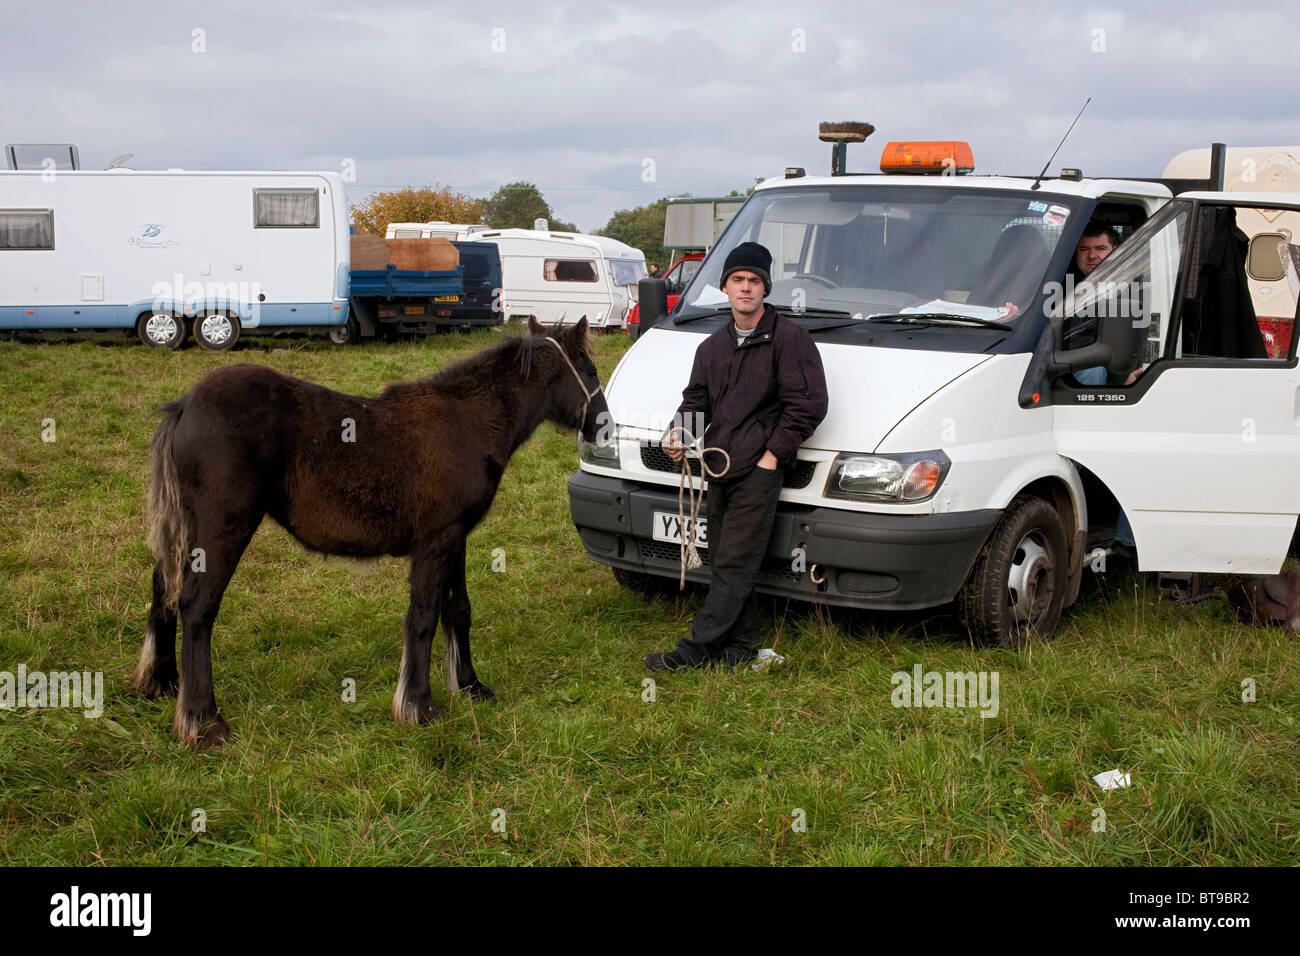 A  young Irish traveller leans on the bonnet of his white pick up truck holding his small pony at Stow Horse Fair. - Stock Image